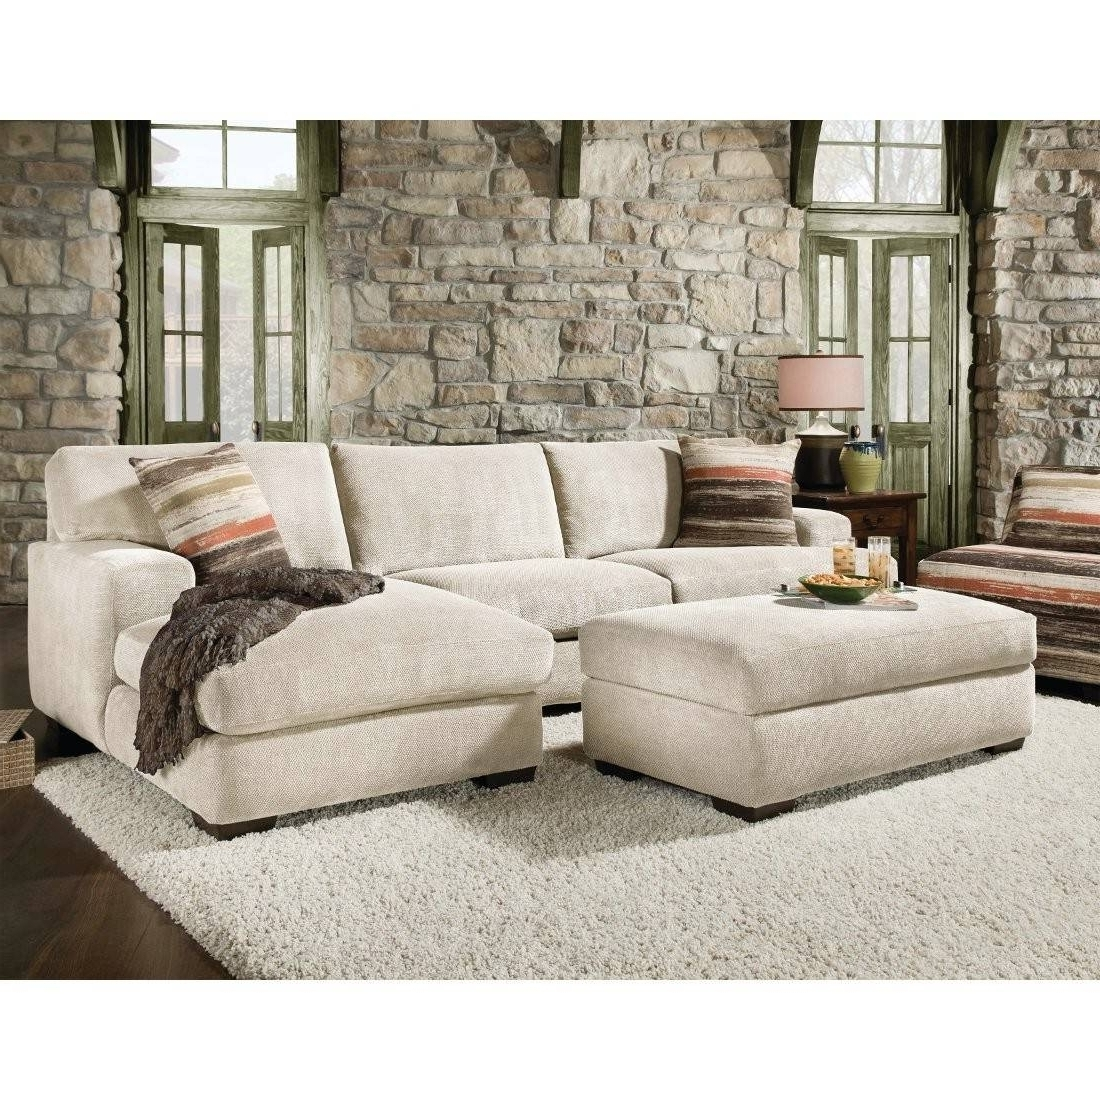 Down Filled Sectional Sofas Throughout Famous Beautiful Down Filled Sectional Sofa 75 For Your Modern Sofa Ideas (View 4 of 15)